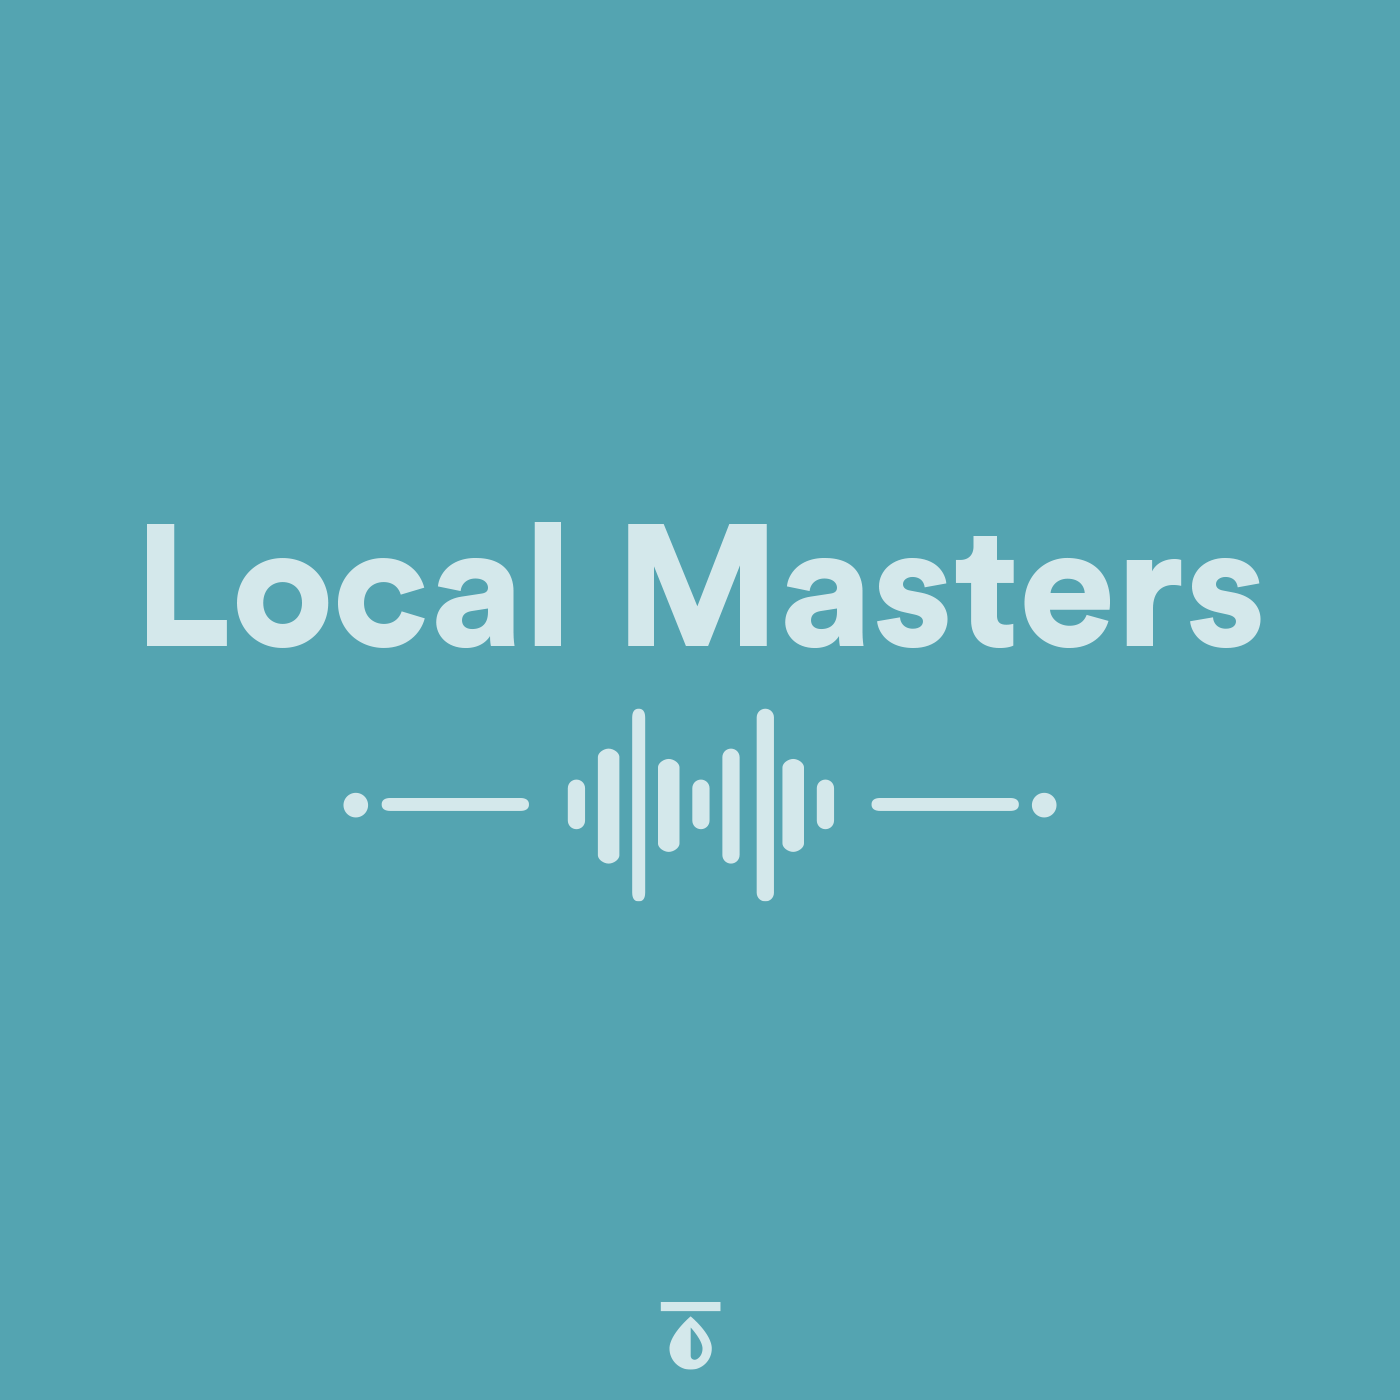 Local Masters